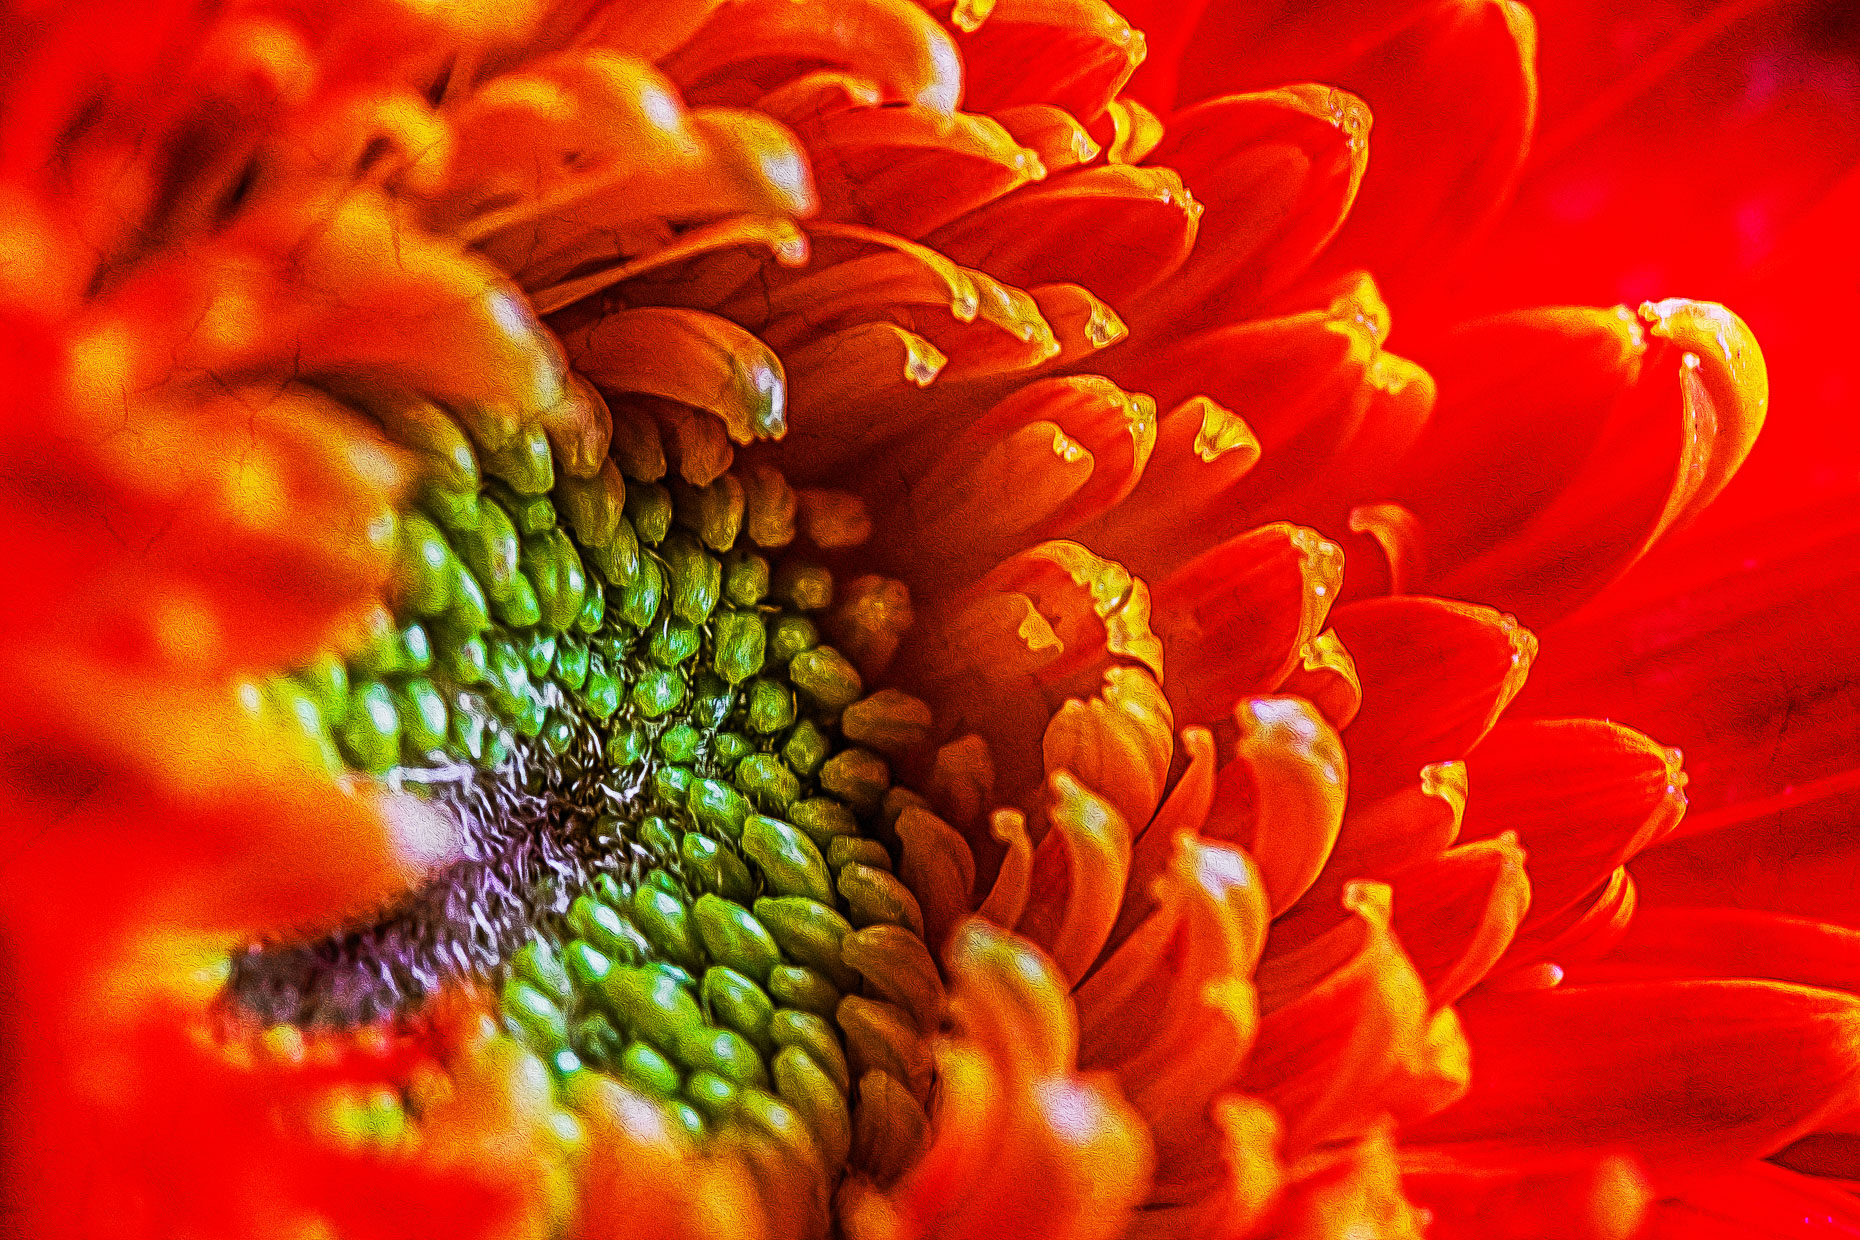 Bright Orange Gerber Daisy Flower #3